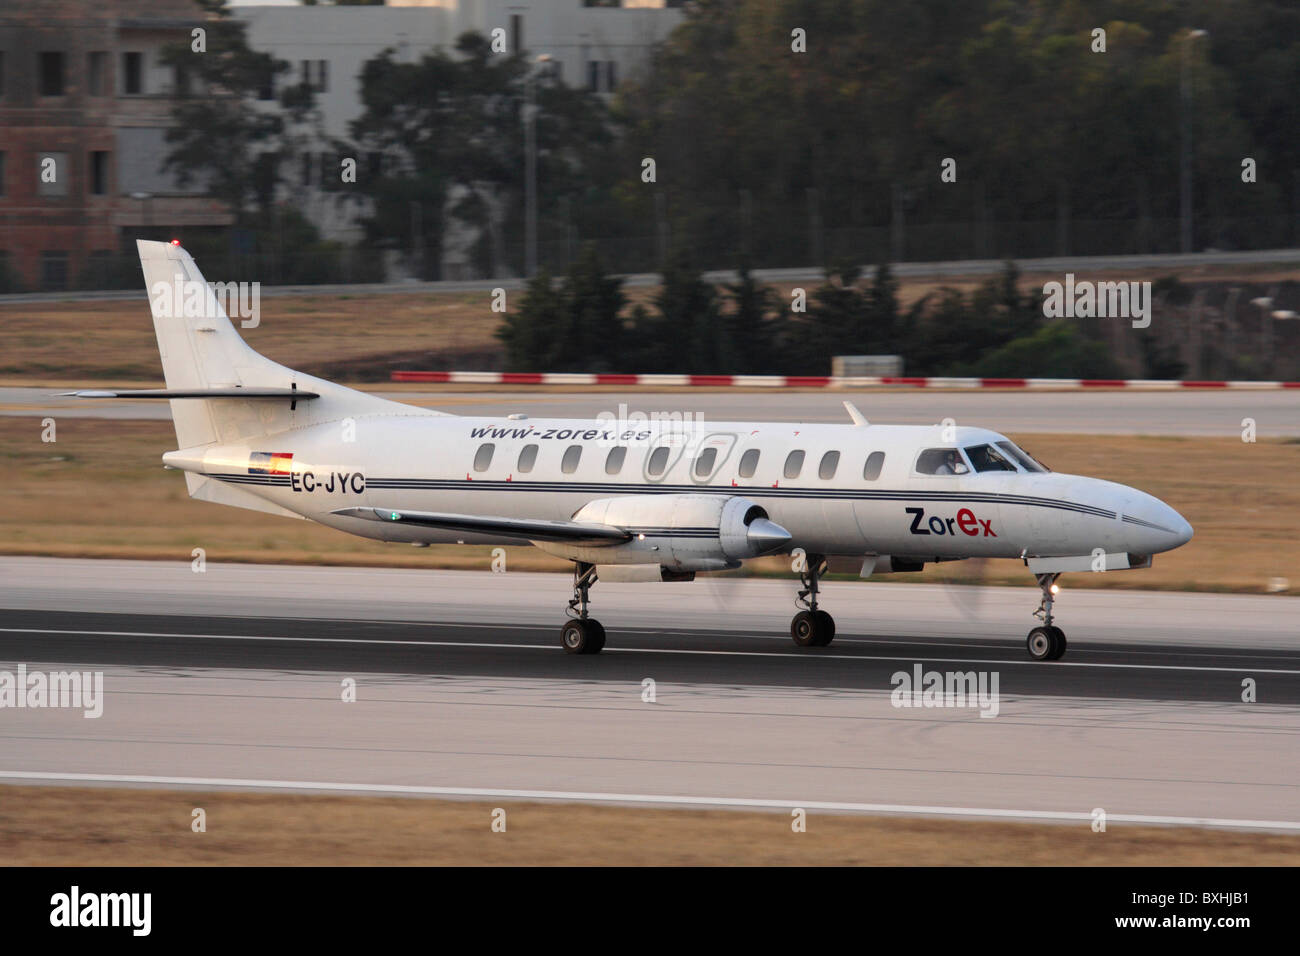 Fairchild Metro II operated by Zorex on takeoff - Stock Image